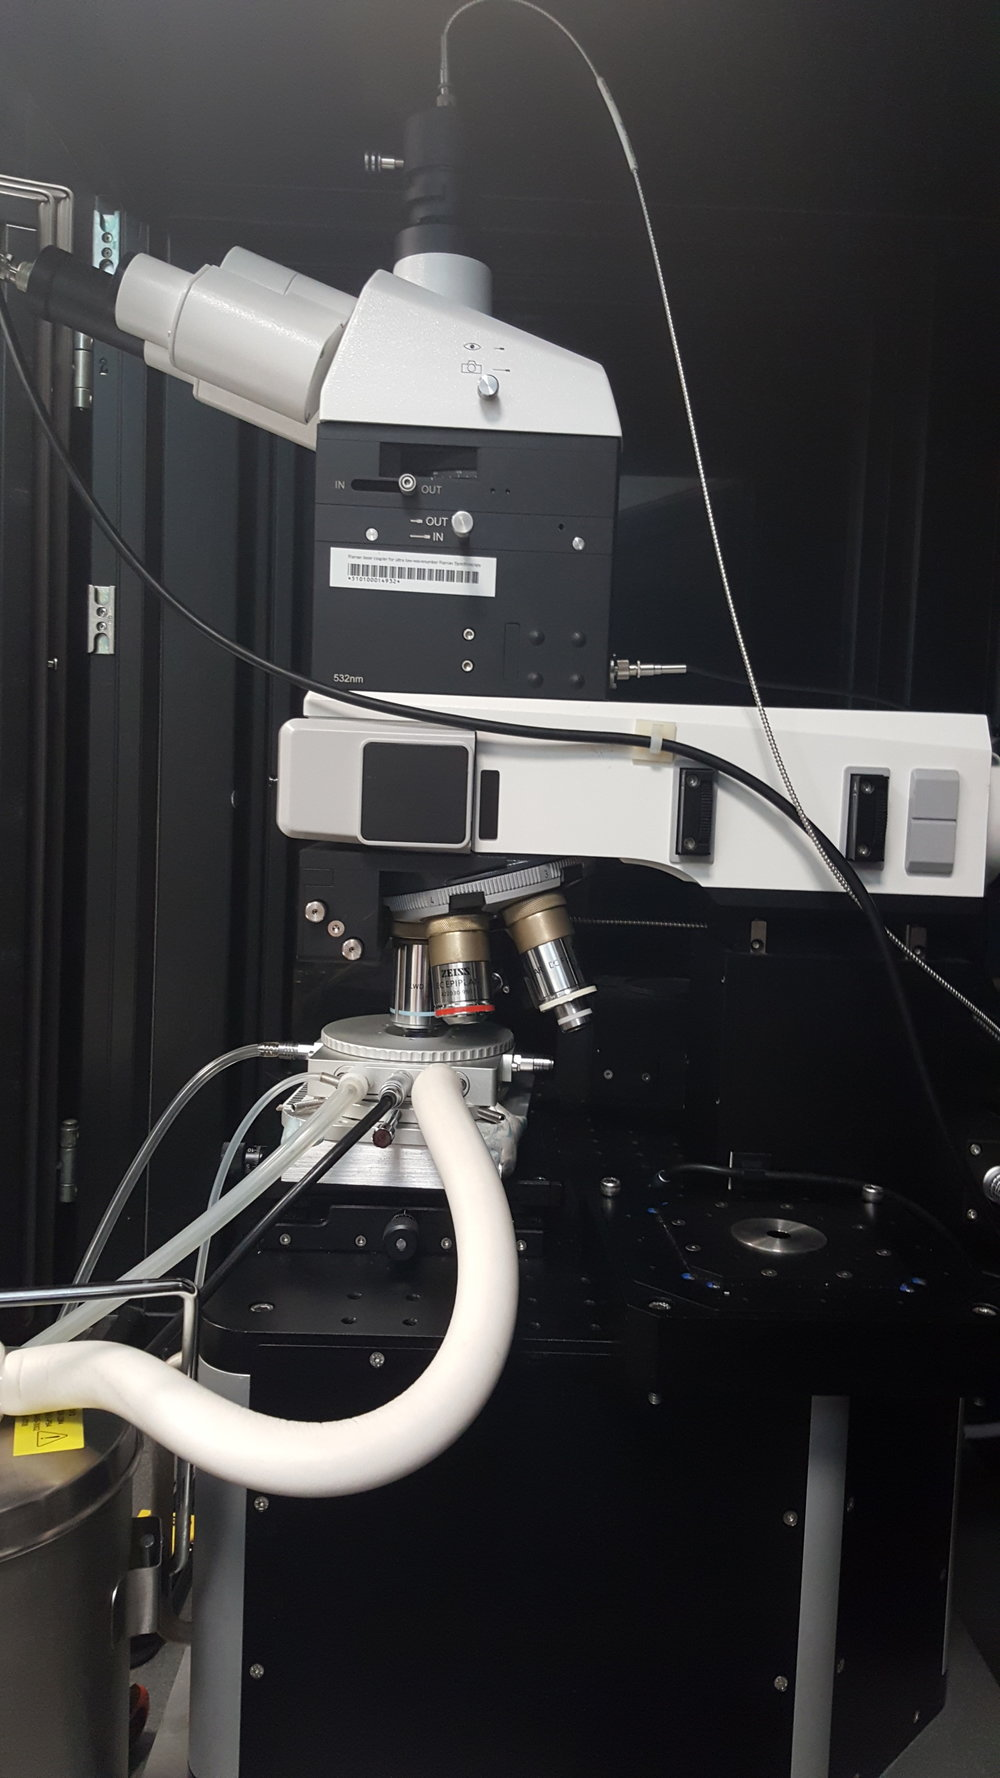 The HFS set up with liquid nitrogen cooling and a WiTec Raman Spectrometer.